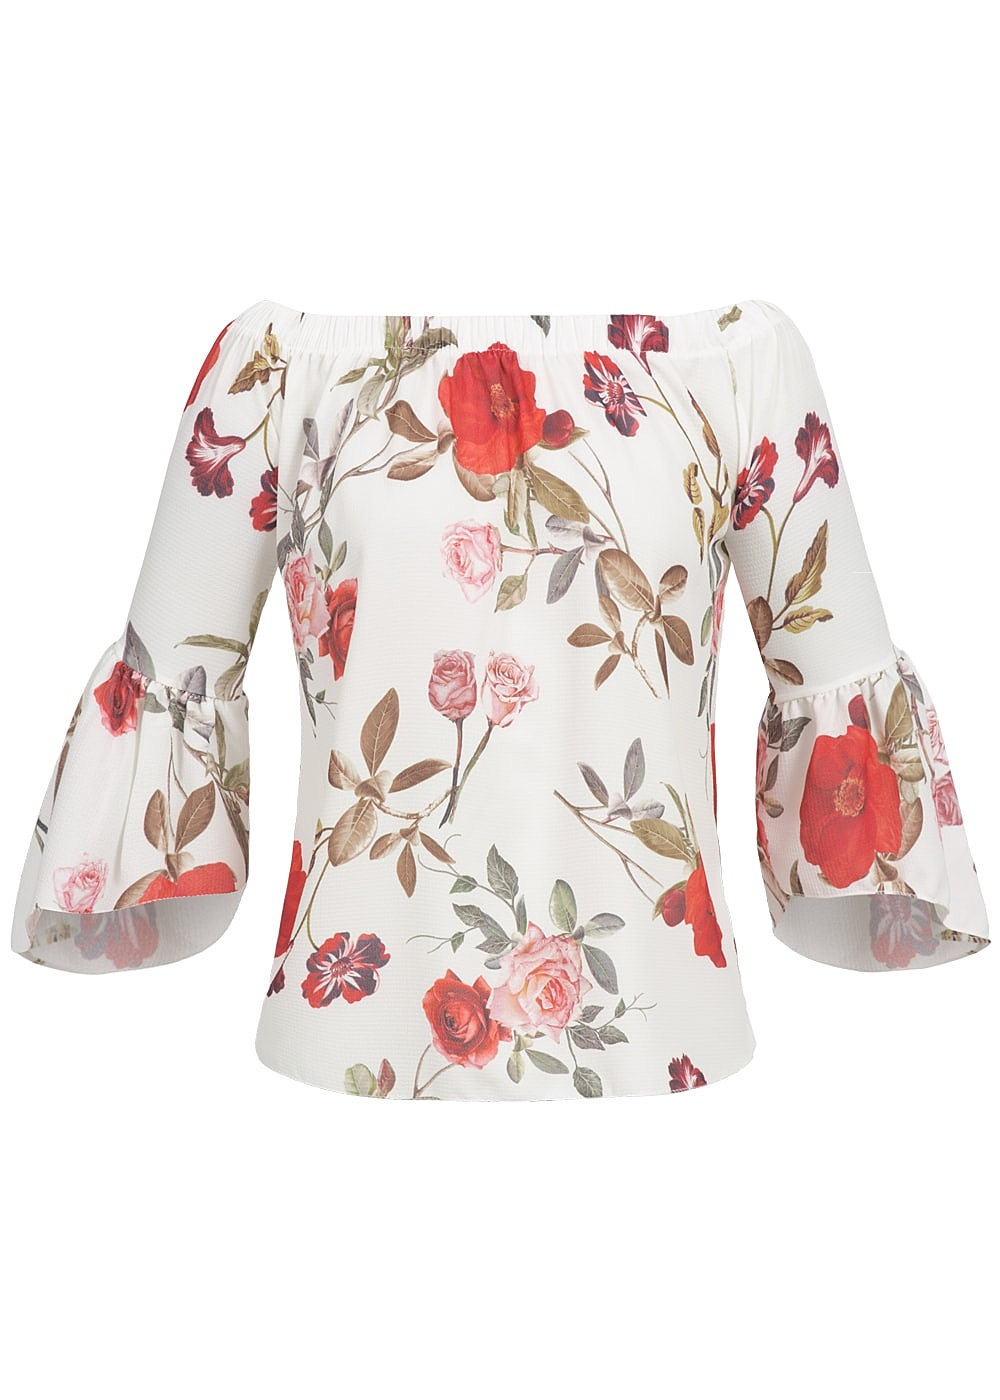 hailys damen shirt 3 4 rmel ausgestellt carmen ausschnitt blumen muster weiss 77onlineshop. Black Bedroom Furniture Sets. Home Design Ideas